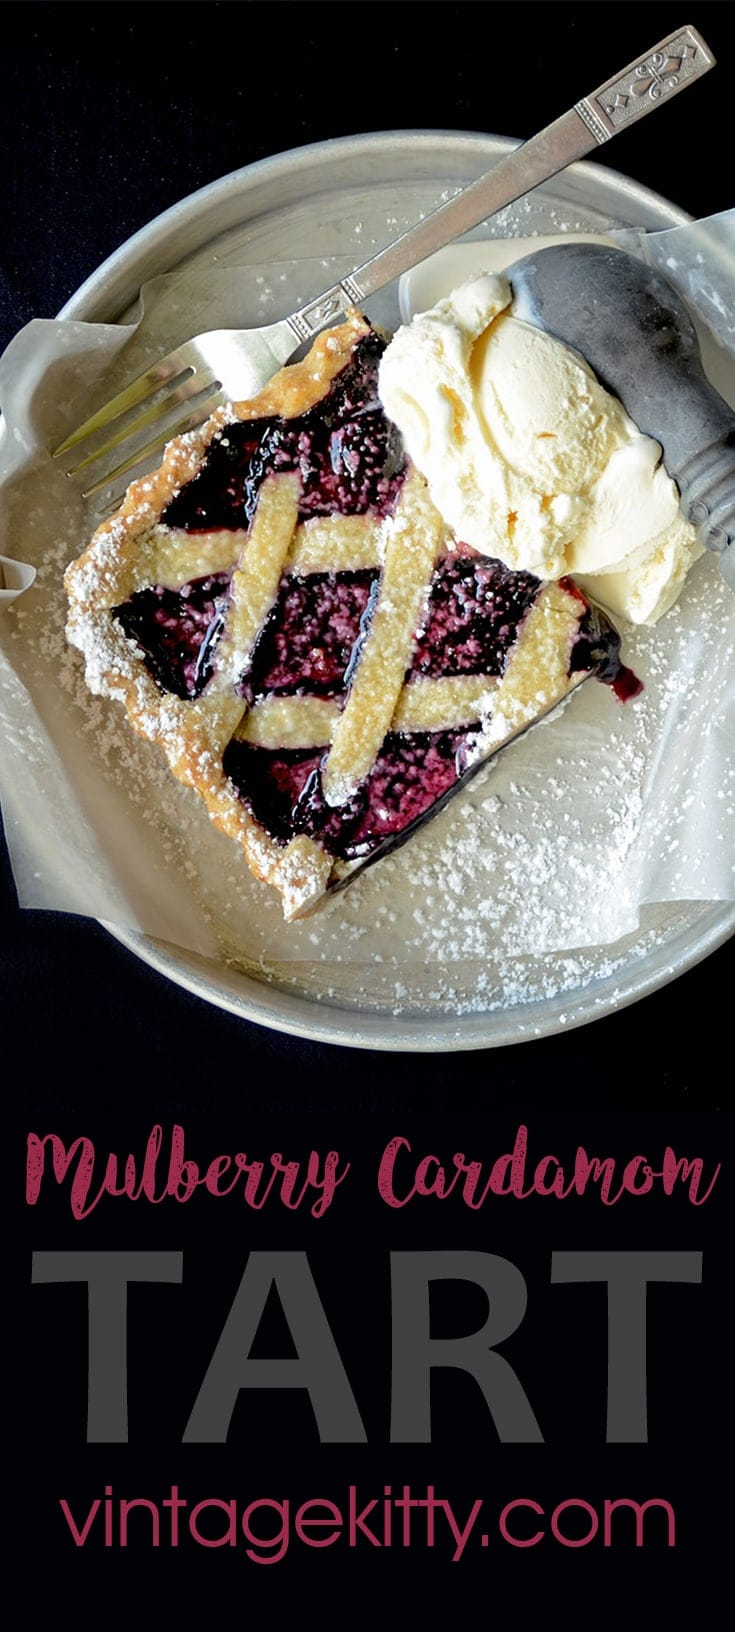 Mulberry Tart Pin - Mulberry Tart with Cardamom and Black Pepper